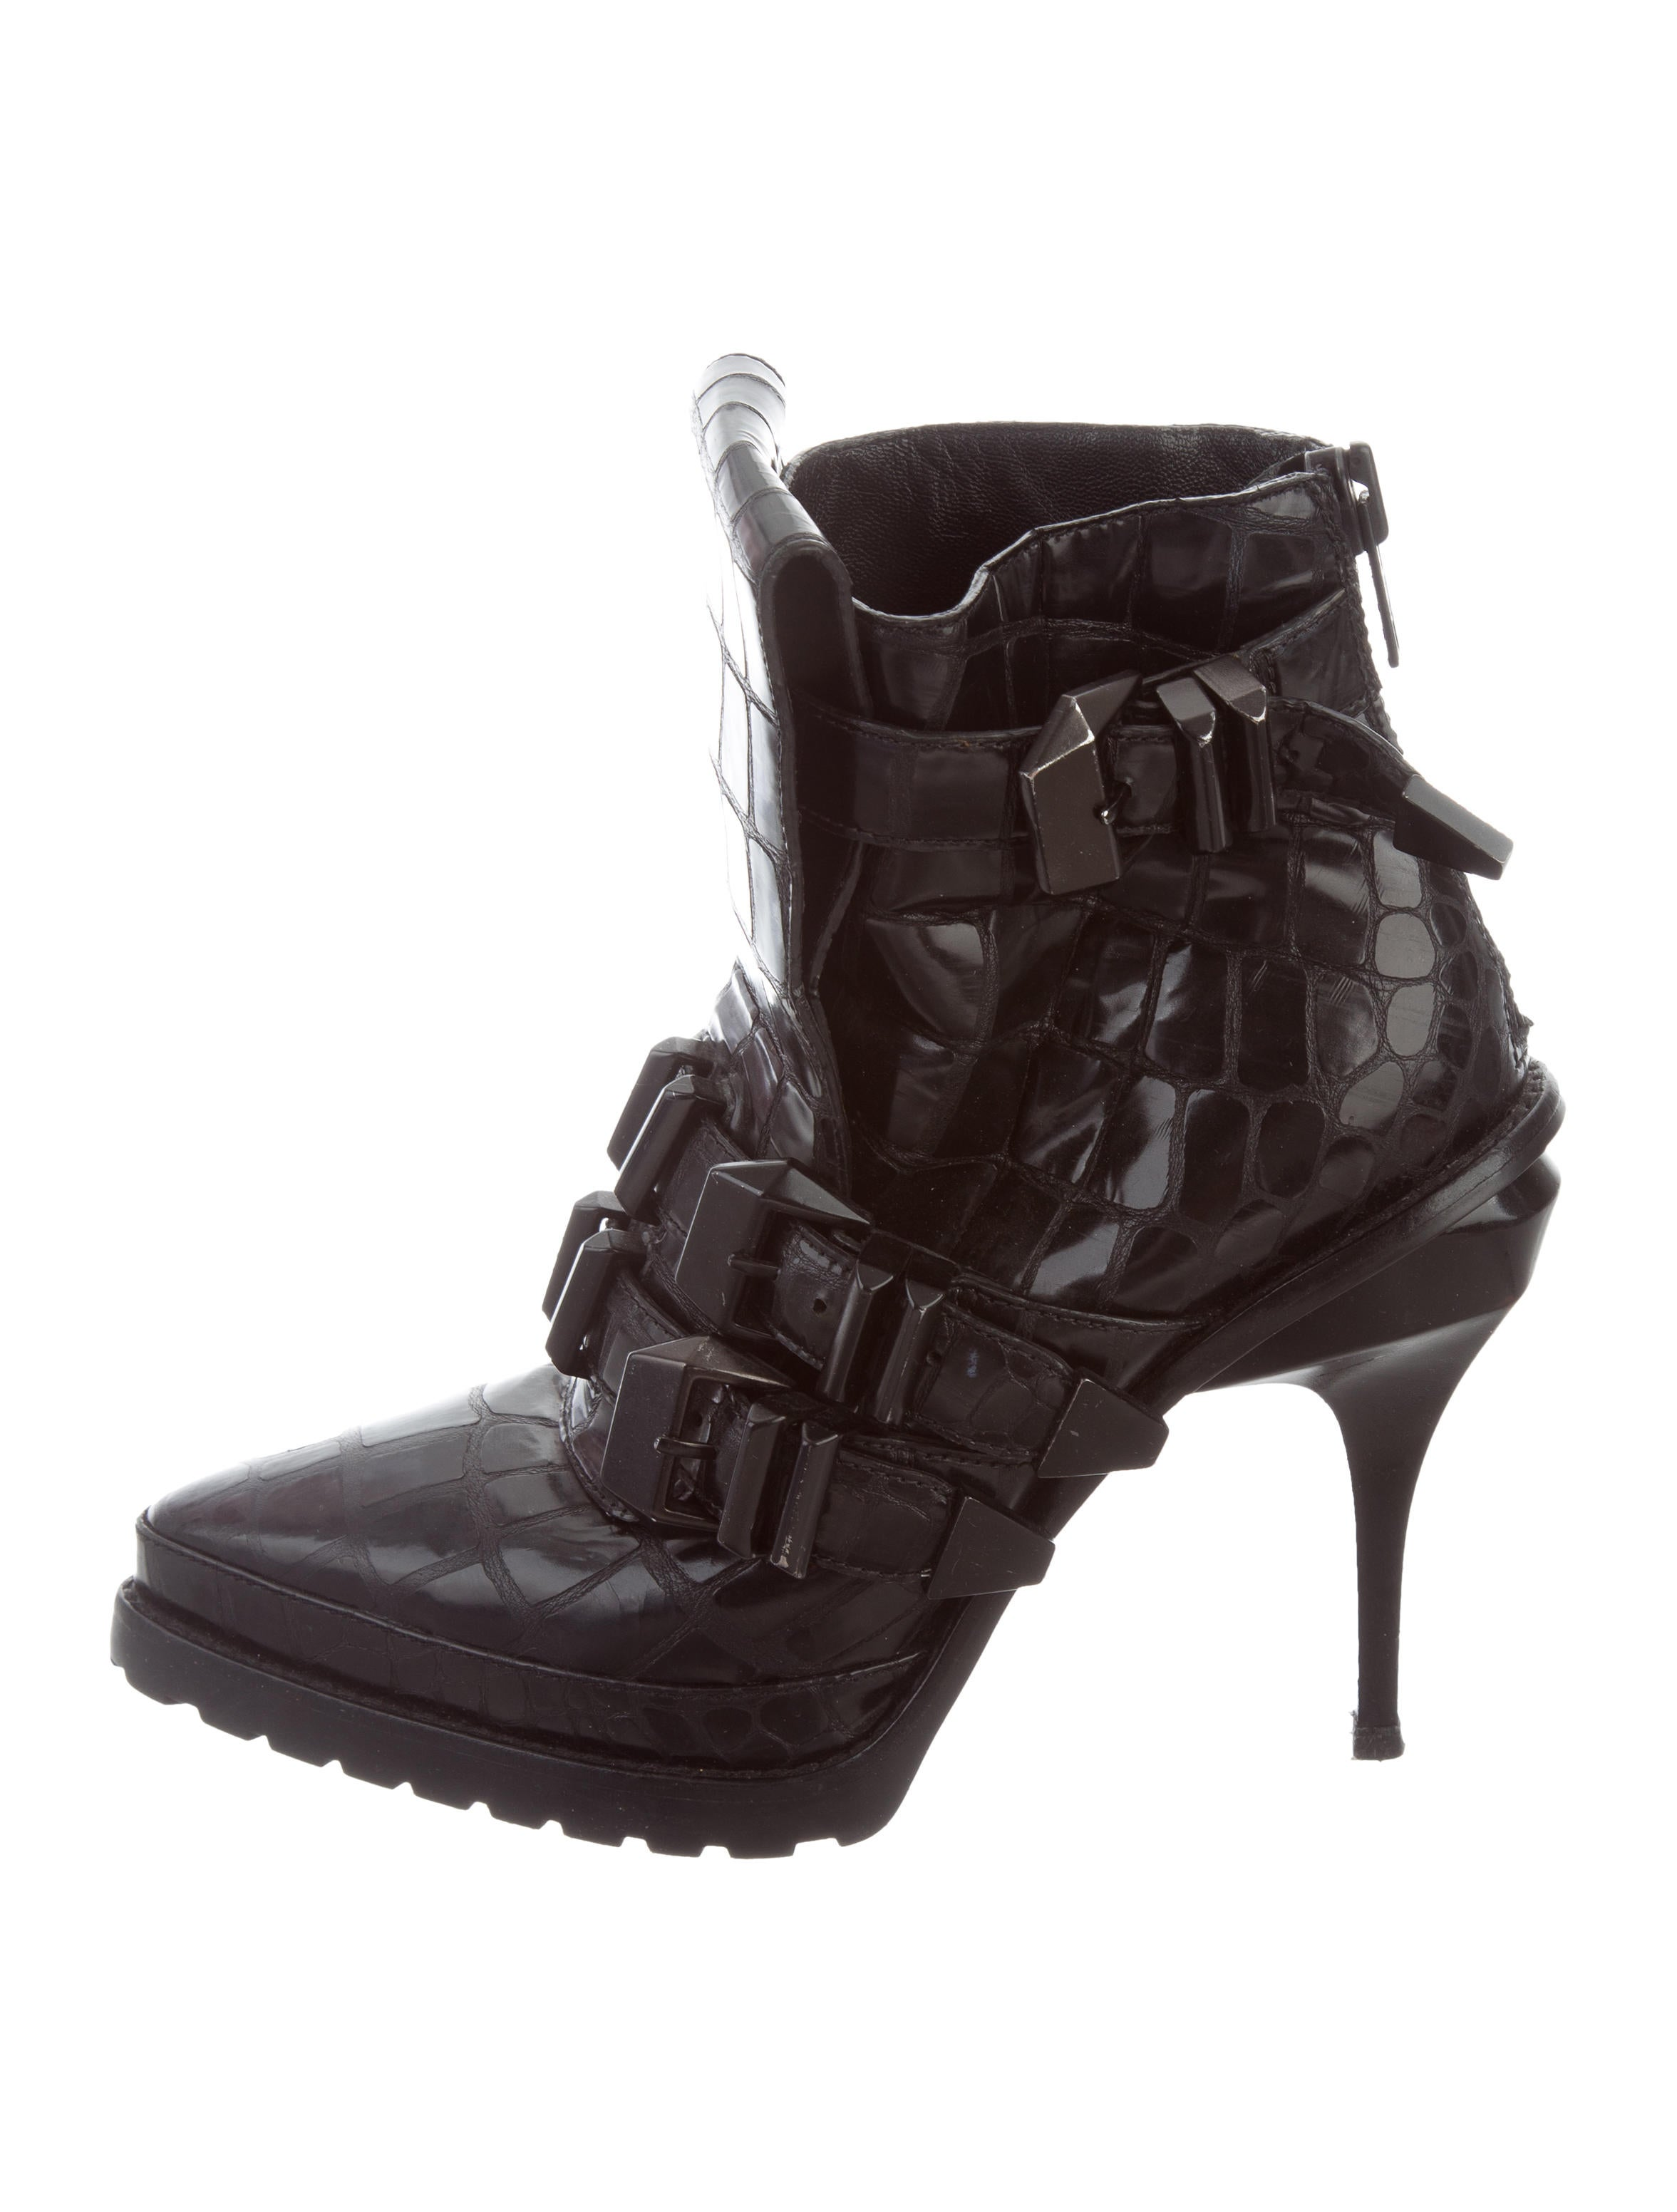 for sale for sale cheap sale new Alexander Wang Patent Leather Buckle Booties cheap price outlet original for sale 4xdtb4y0P